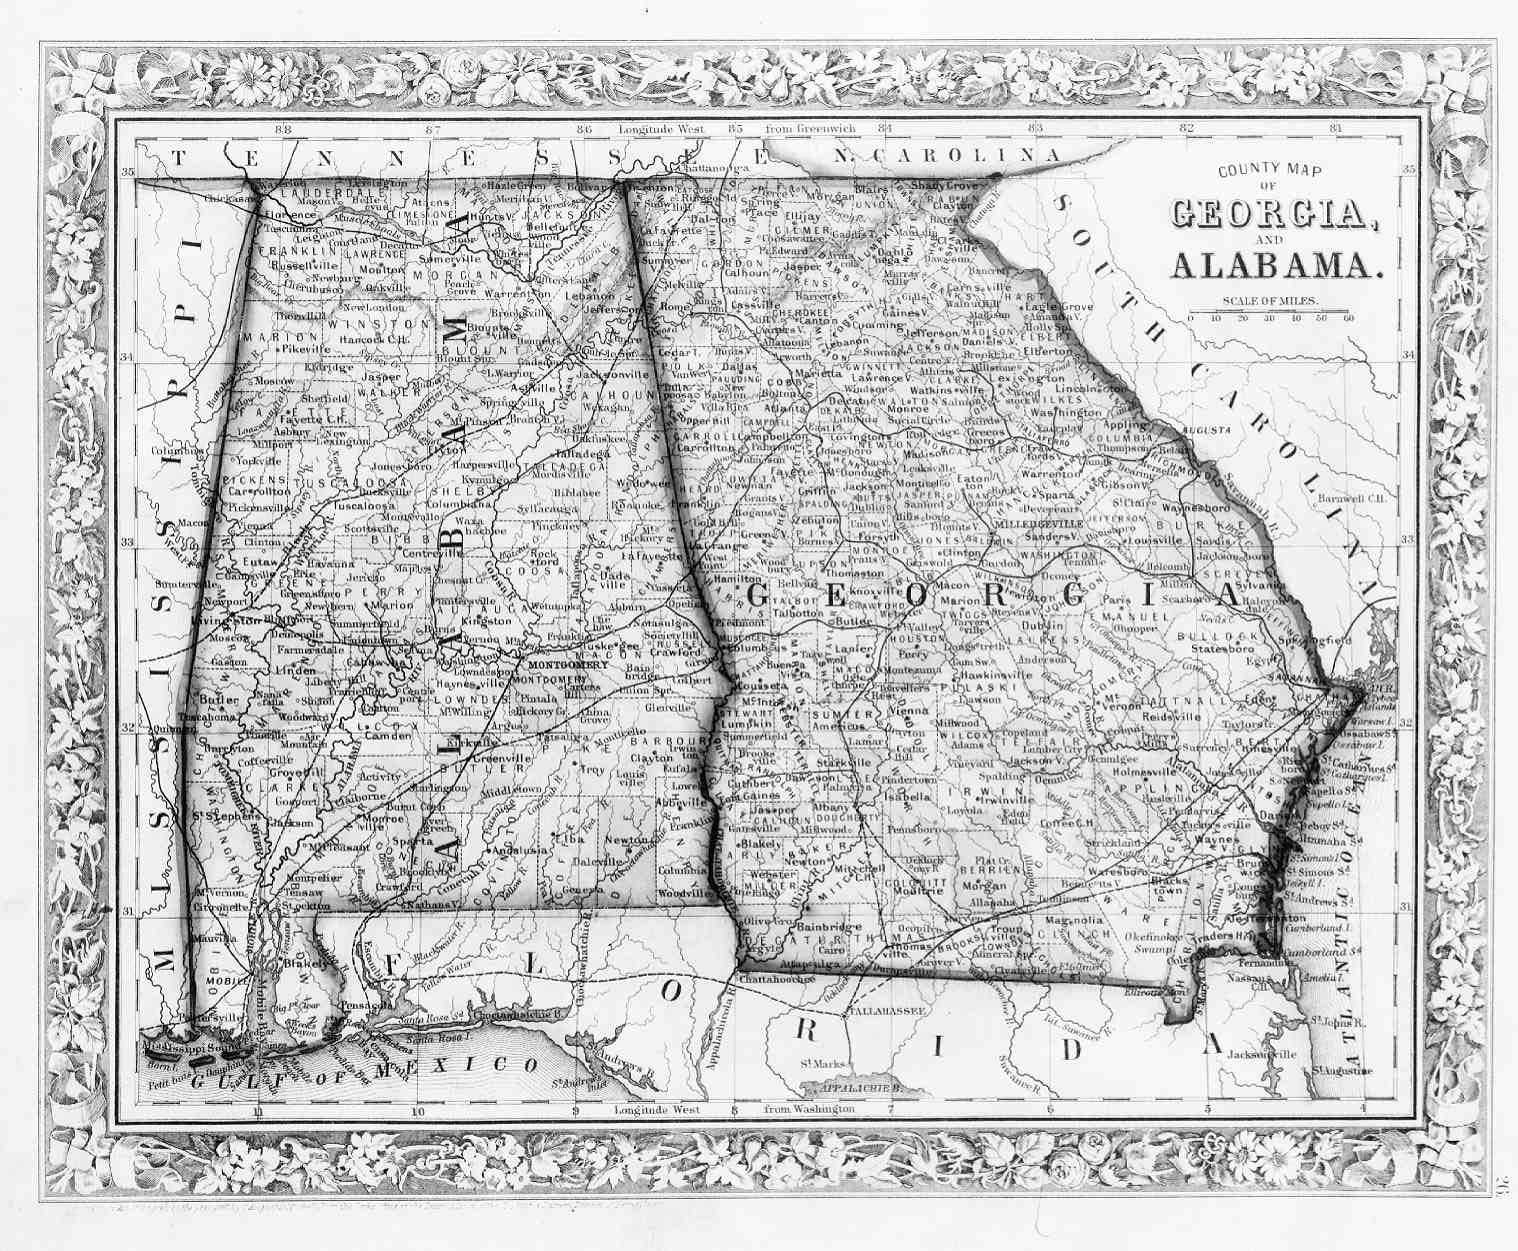 Alabama State Map By County.Hargrett Library Rare Map Collection Frontier To New South